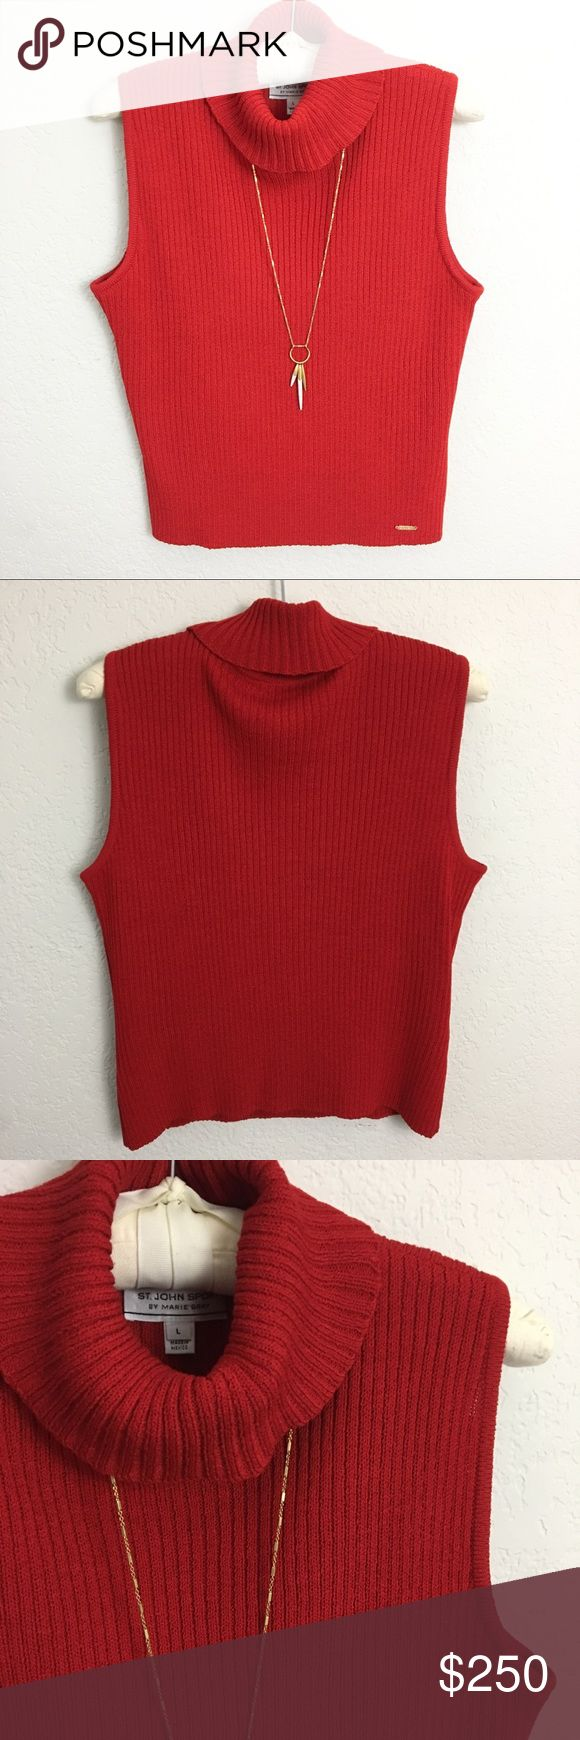 St. John Sport Ribbed Sleeveless Turtleneck Top St. John Sport Ribbed Sleeveless Turtleneck Top. EUC! Soft. Signature gold label at hip. Wool Blend. 👗Fab Ab's Closet; Re-Styled Resale 👗 🎀15% Off 3+ Item Bundles🎀 👉🏻Please Use Offer Button👈🏻 ❌NO PP, TRADES, HOLDS❌  🛍Items Always 100% Authentic🛍 ✔️Excellent Pre-Owned Condition✔️ 👑Posh Ambassador👑 St. John Sport by Marie Gray Tops